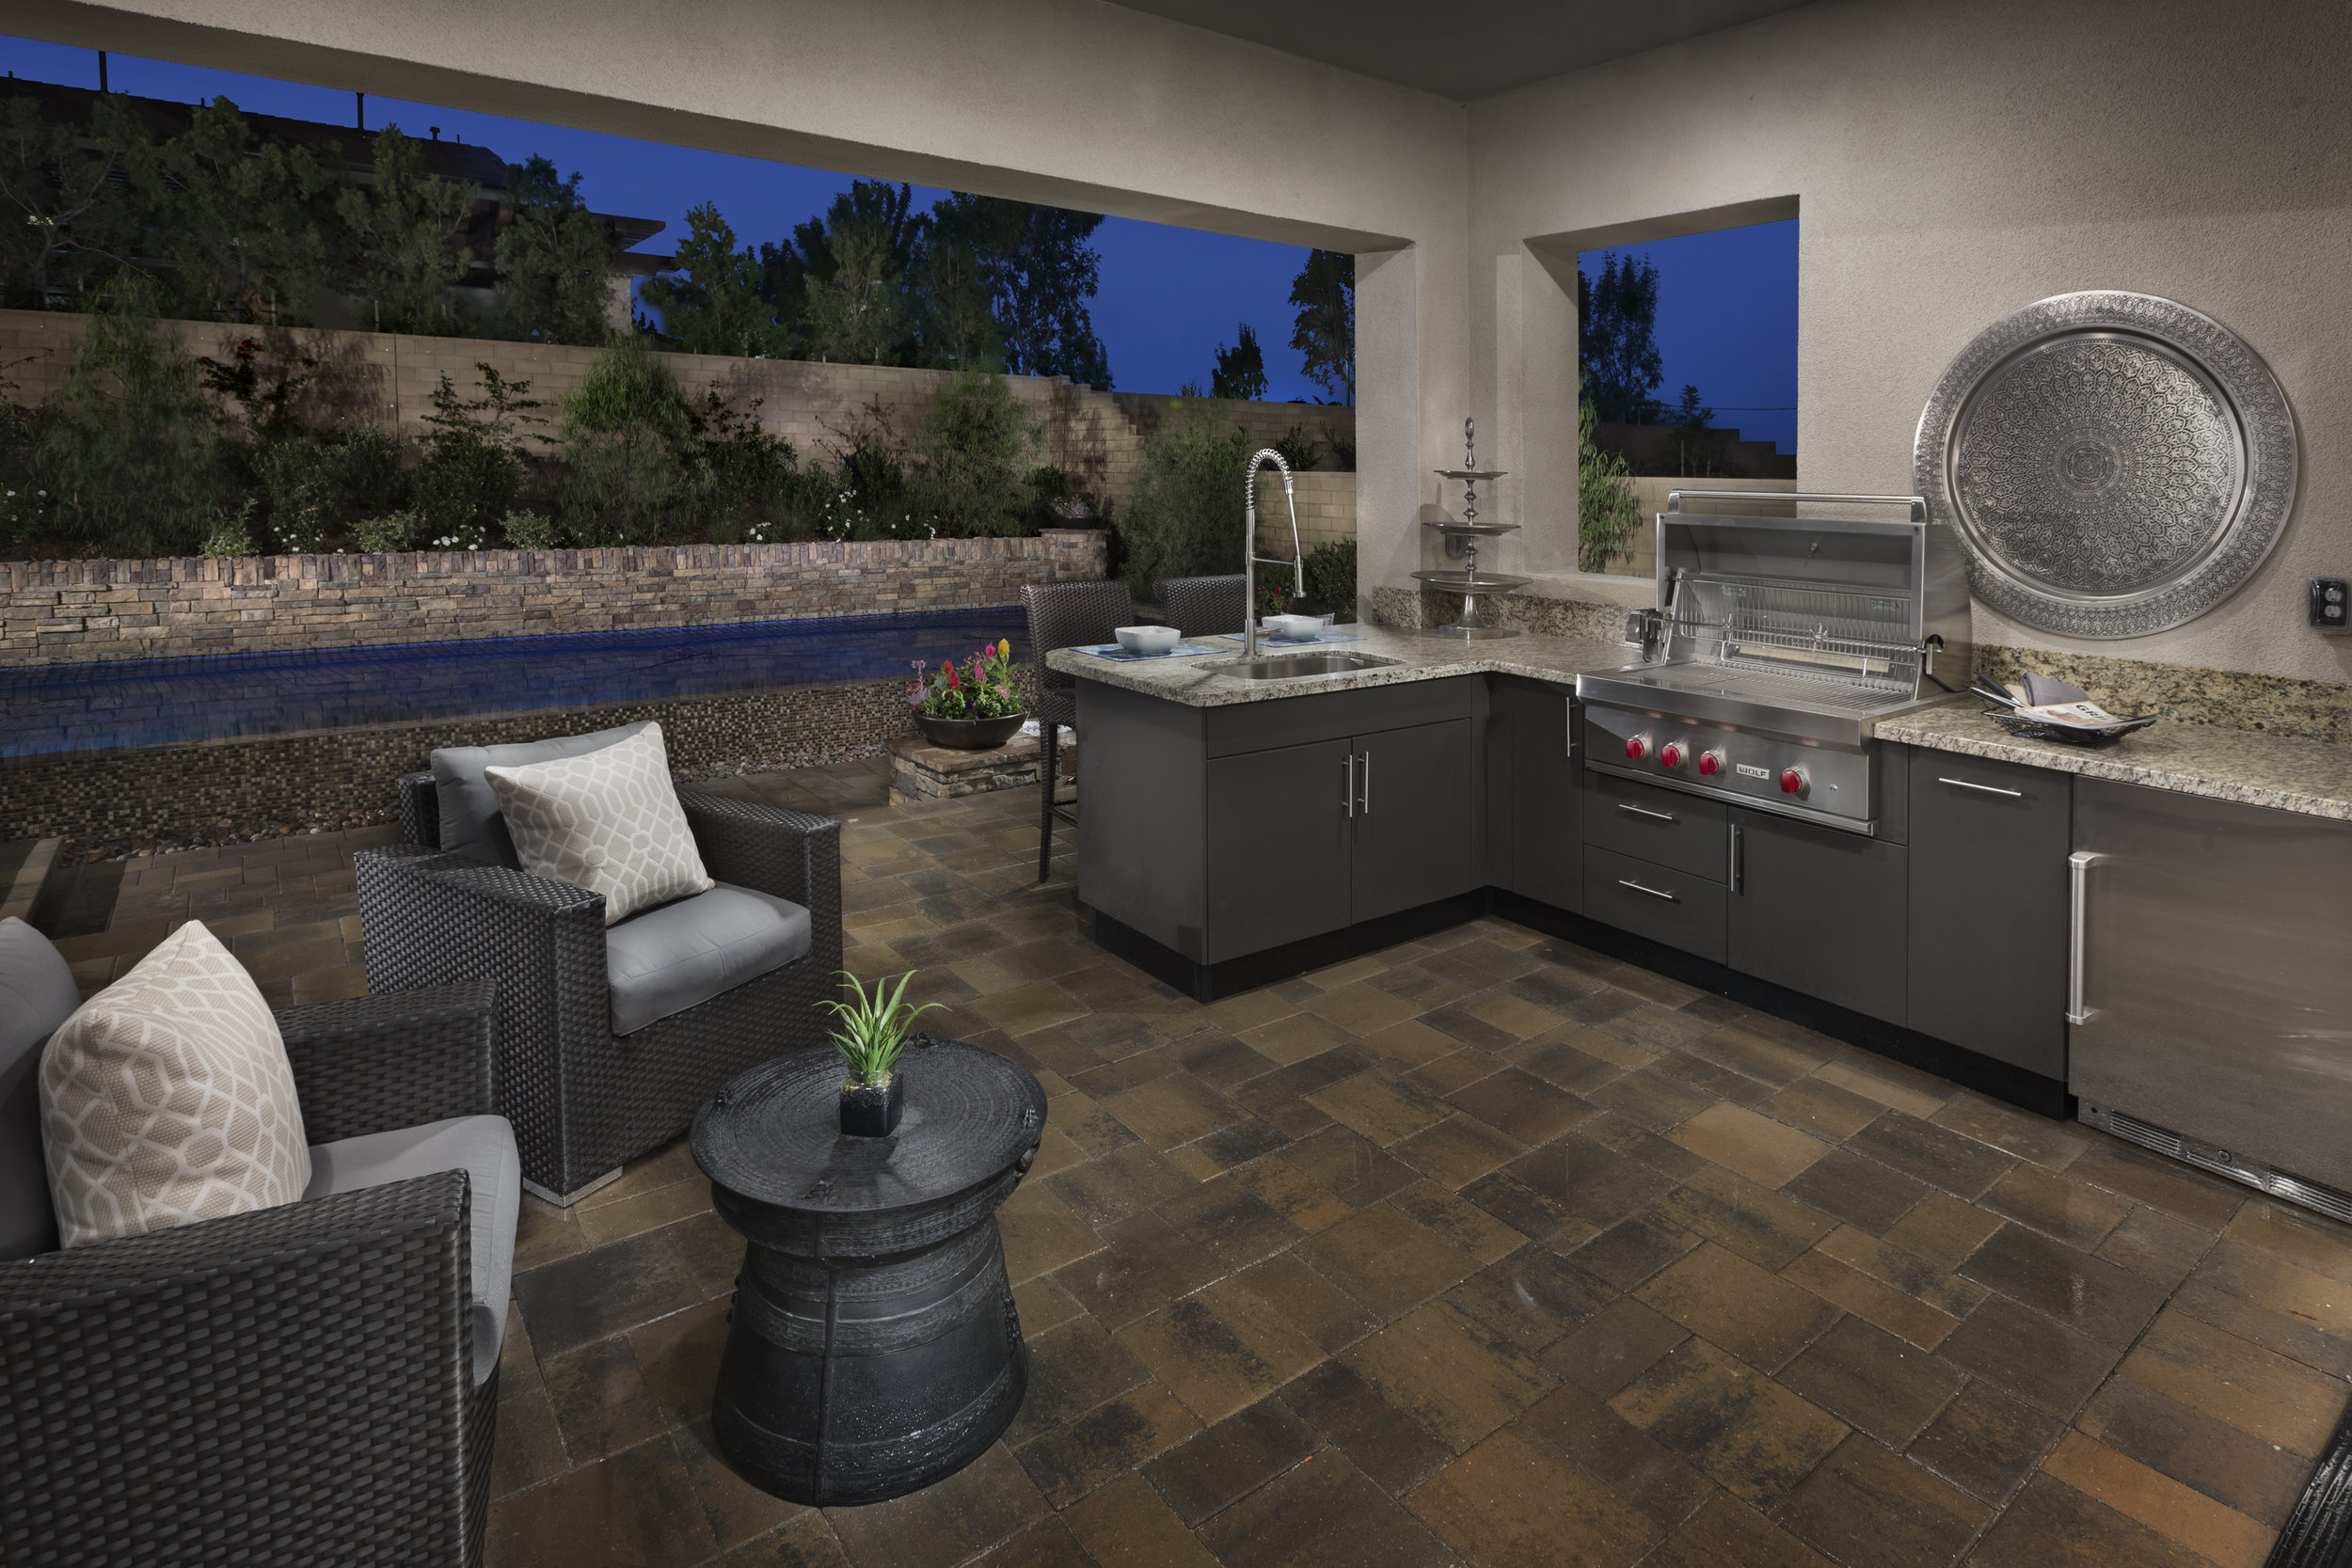 Plan 1 Outdoor BBQ Area - Copy.jpg